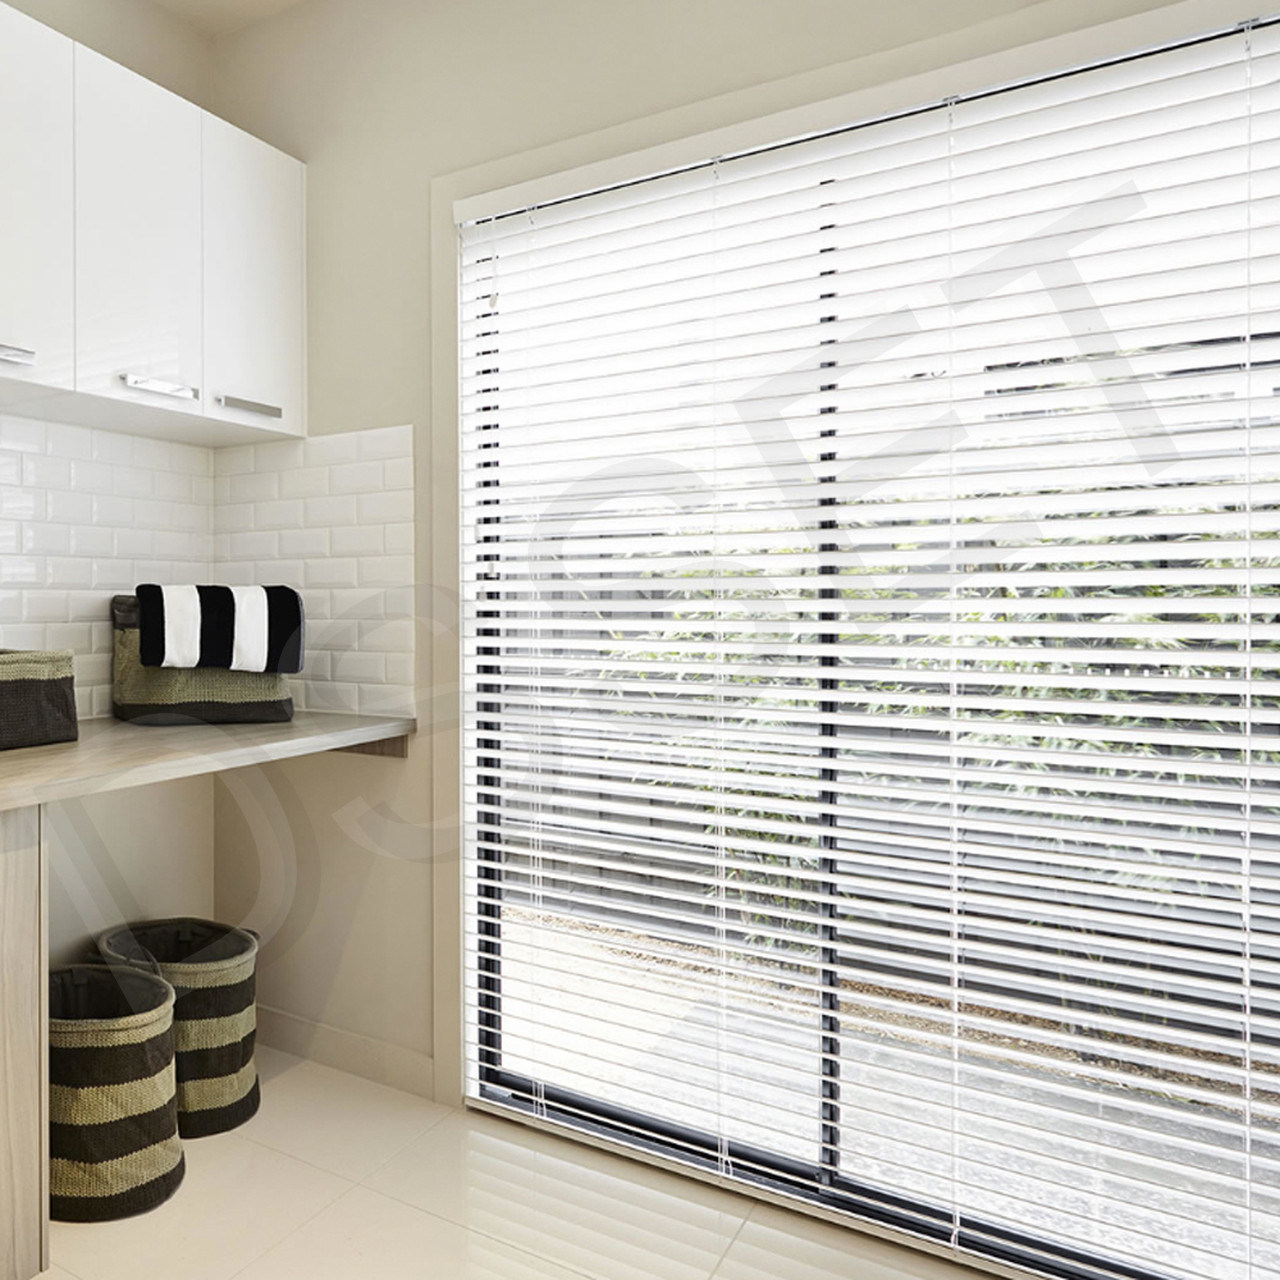 China Smart Blind Motor Electric Venetian Blinds Automatic Window Shades China Venetian Blind Smart Blind Motor Electric